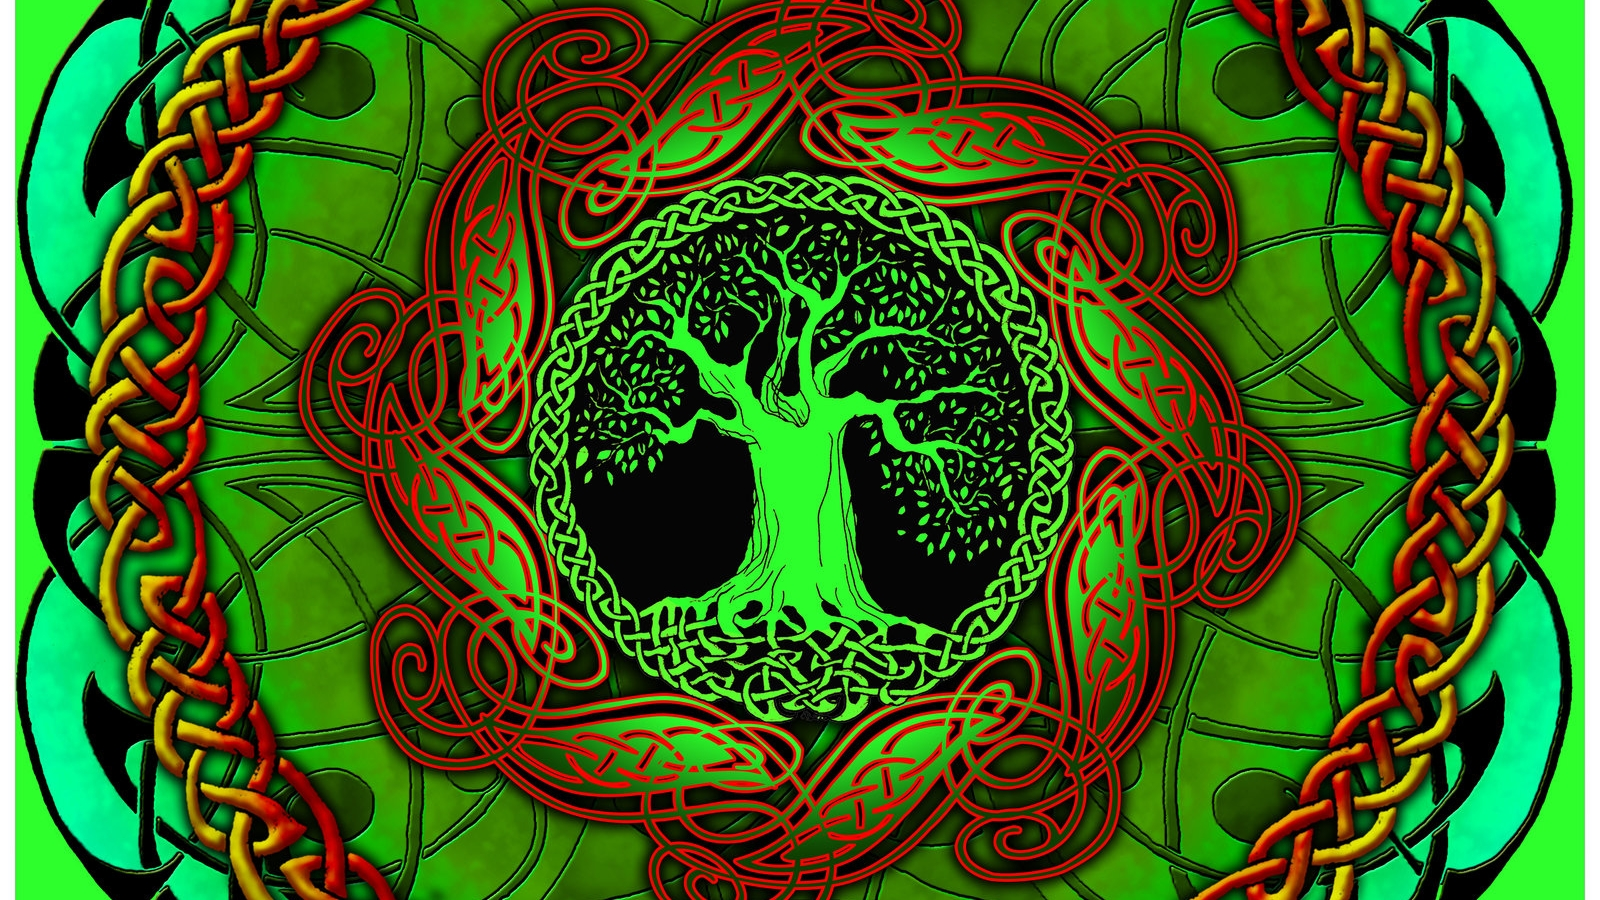 Celtic Tree Of Life Wallpaper Posted By Michelle Tremblay